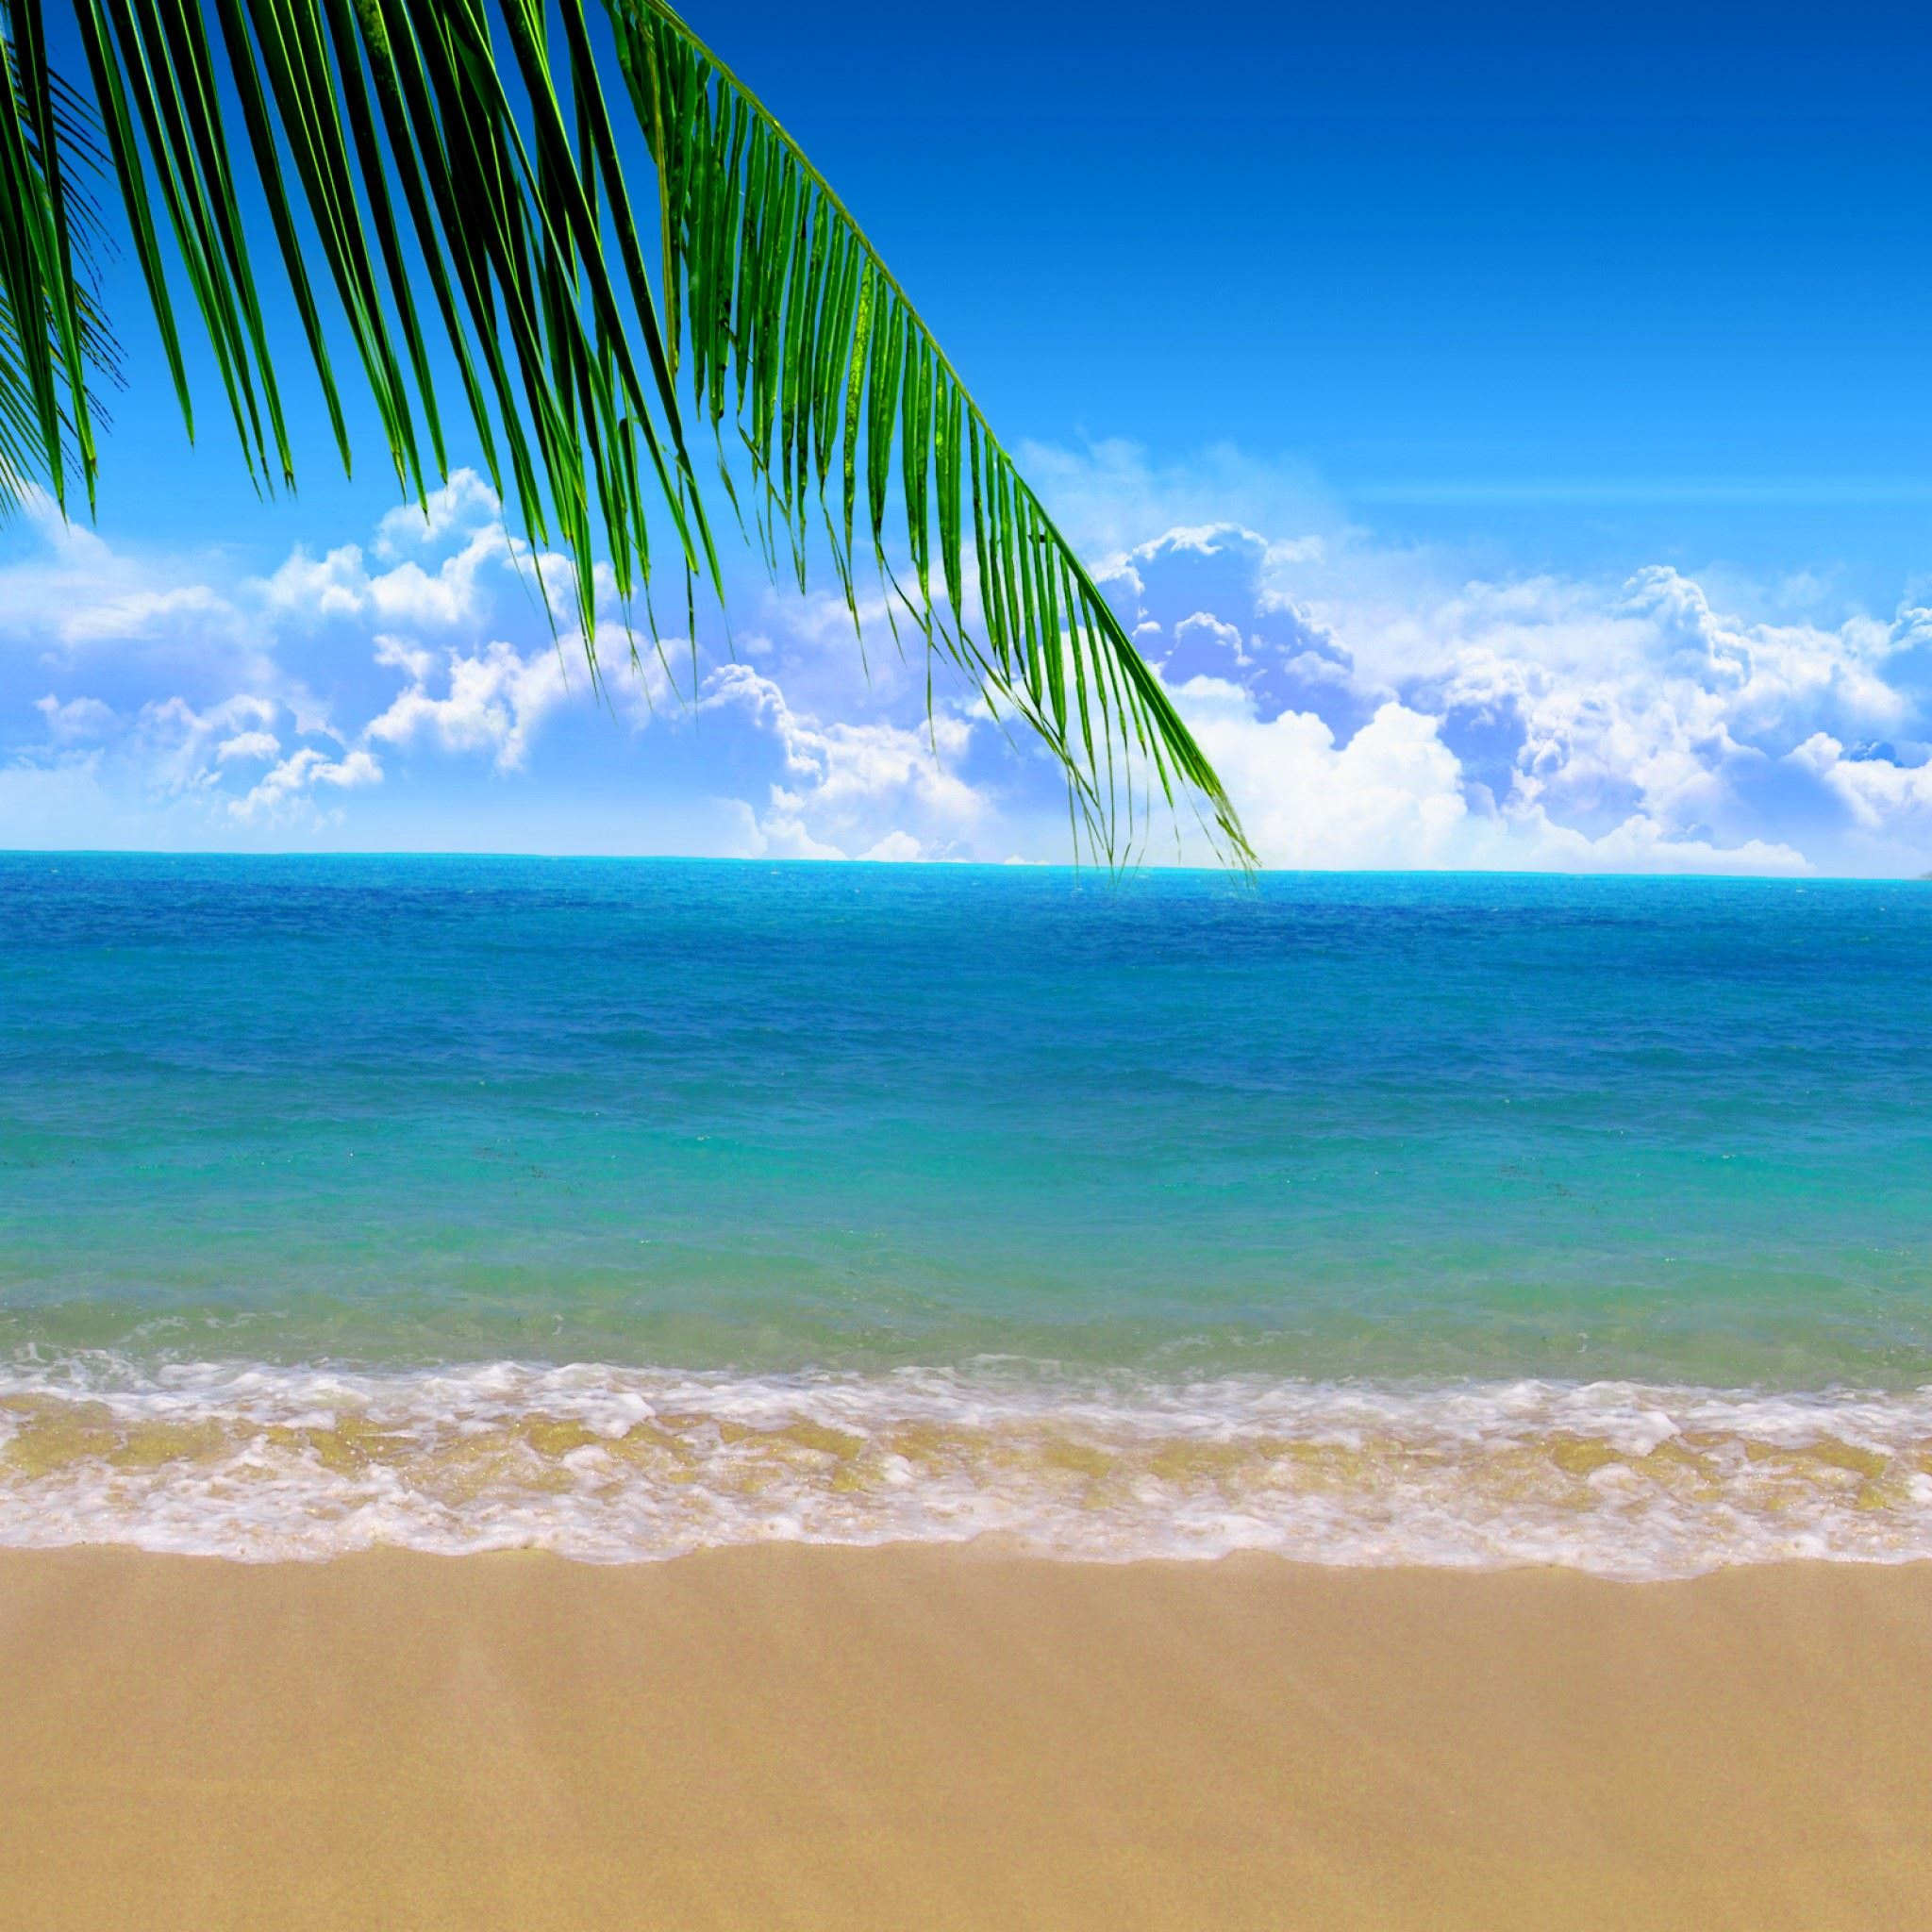 Summer Beach iPad Air wallpaper